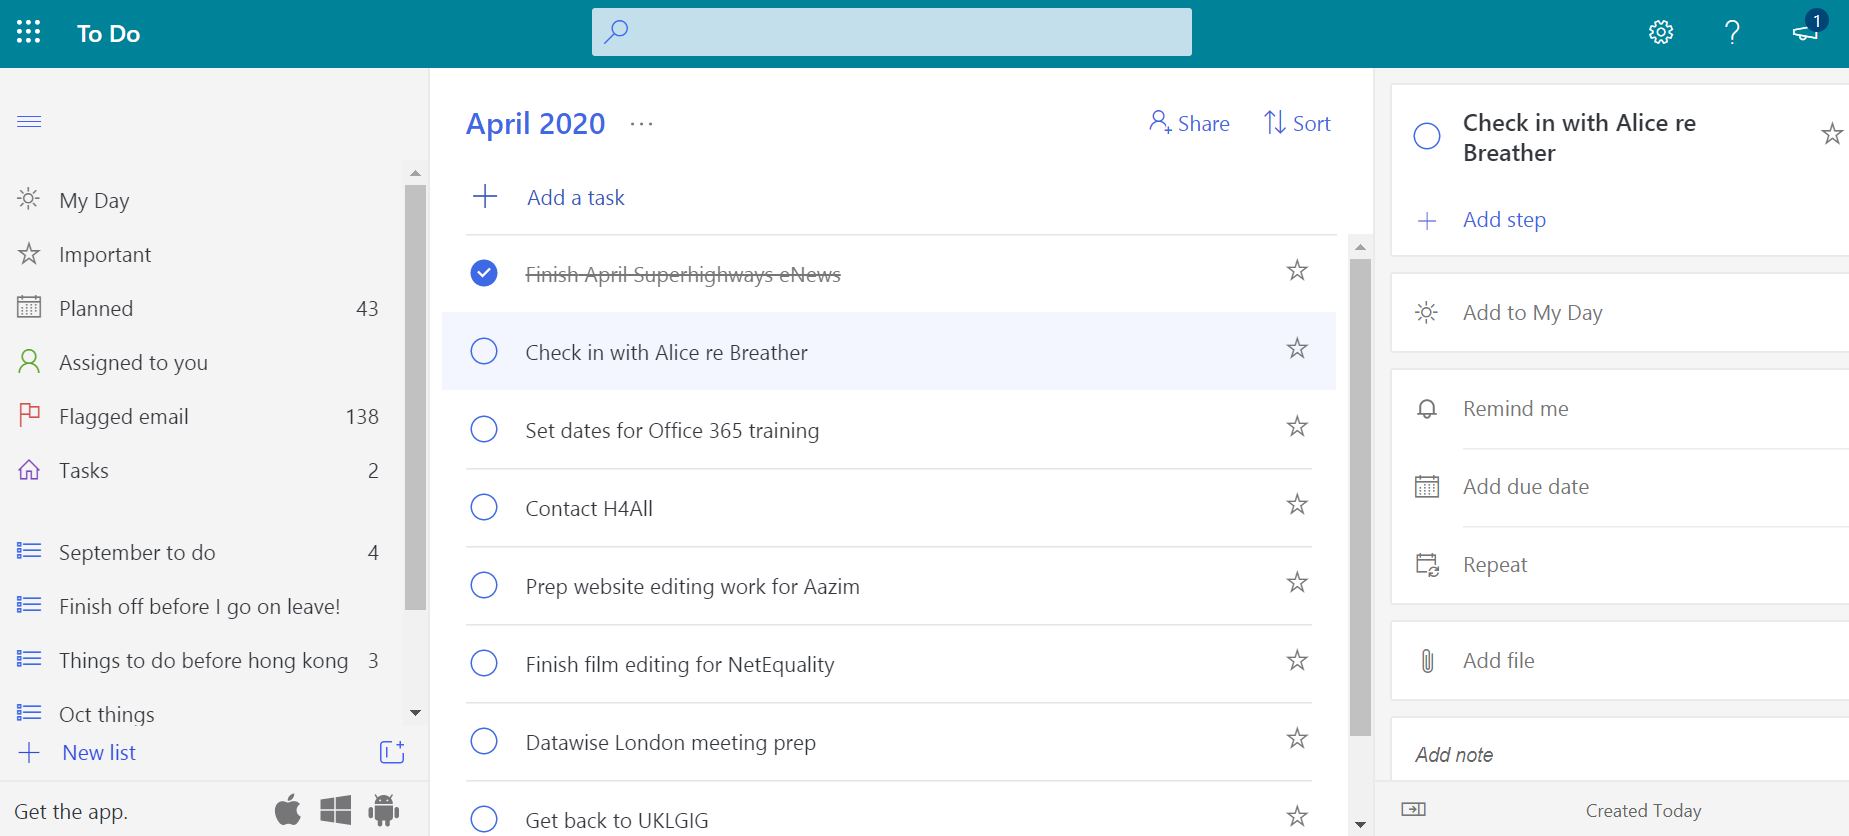 Screenshot of the To Do app listing tasks